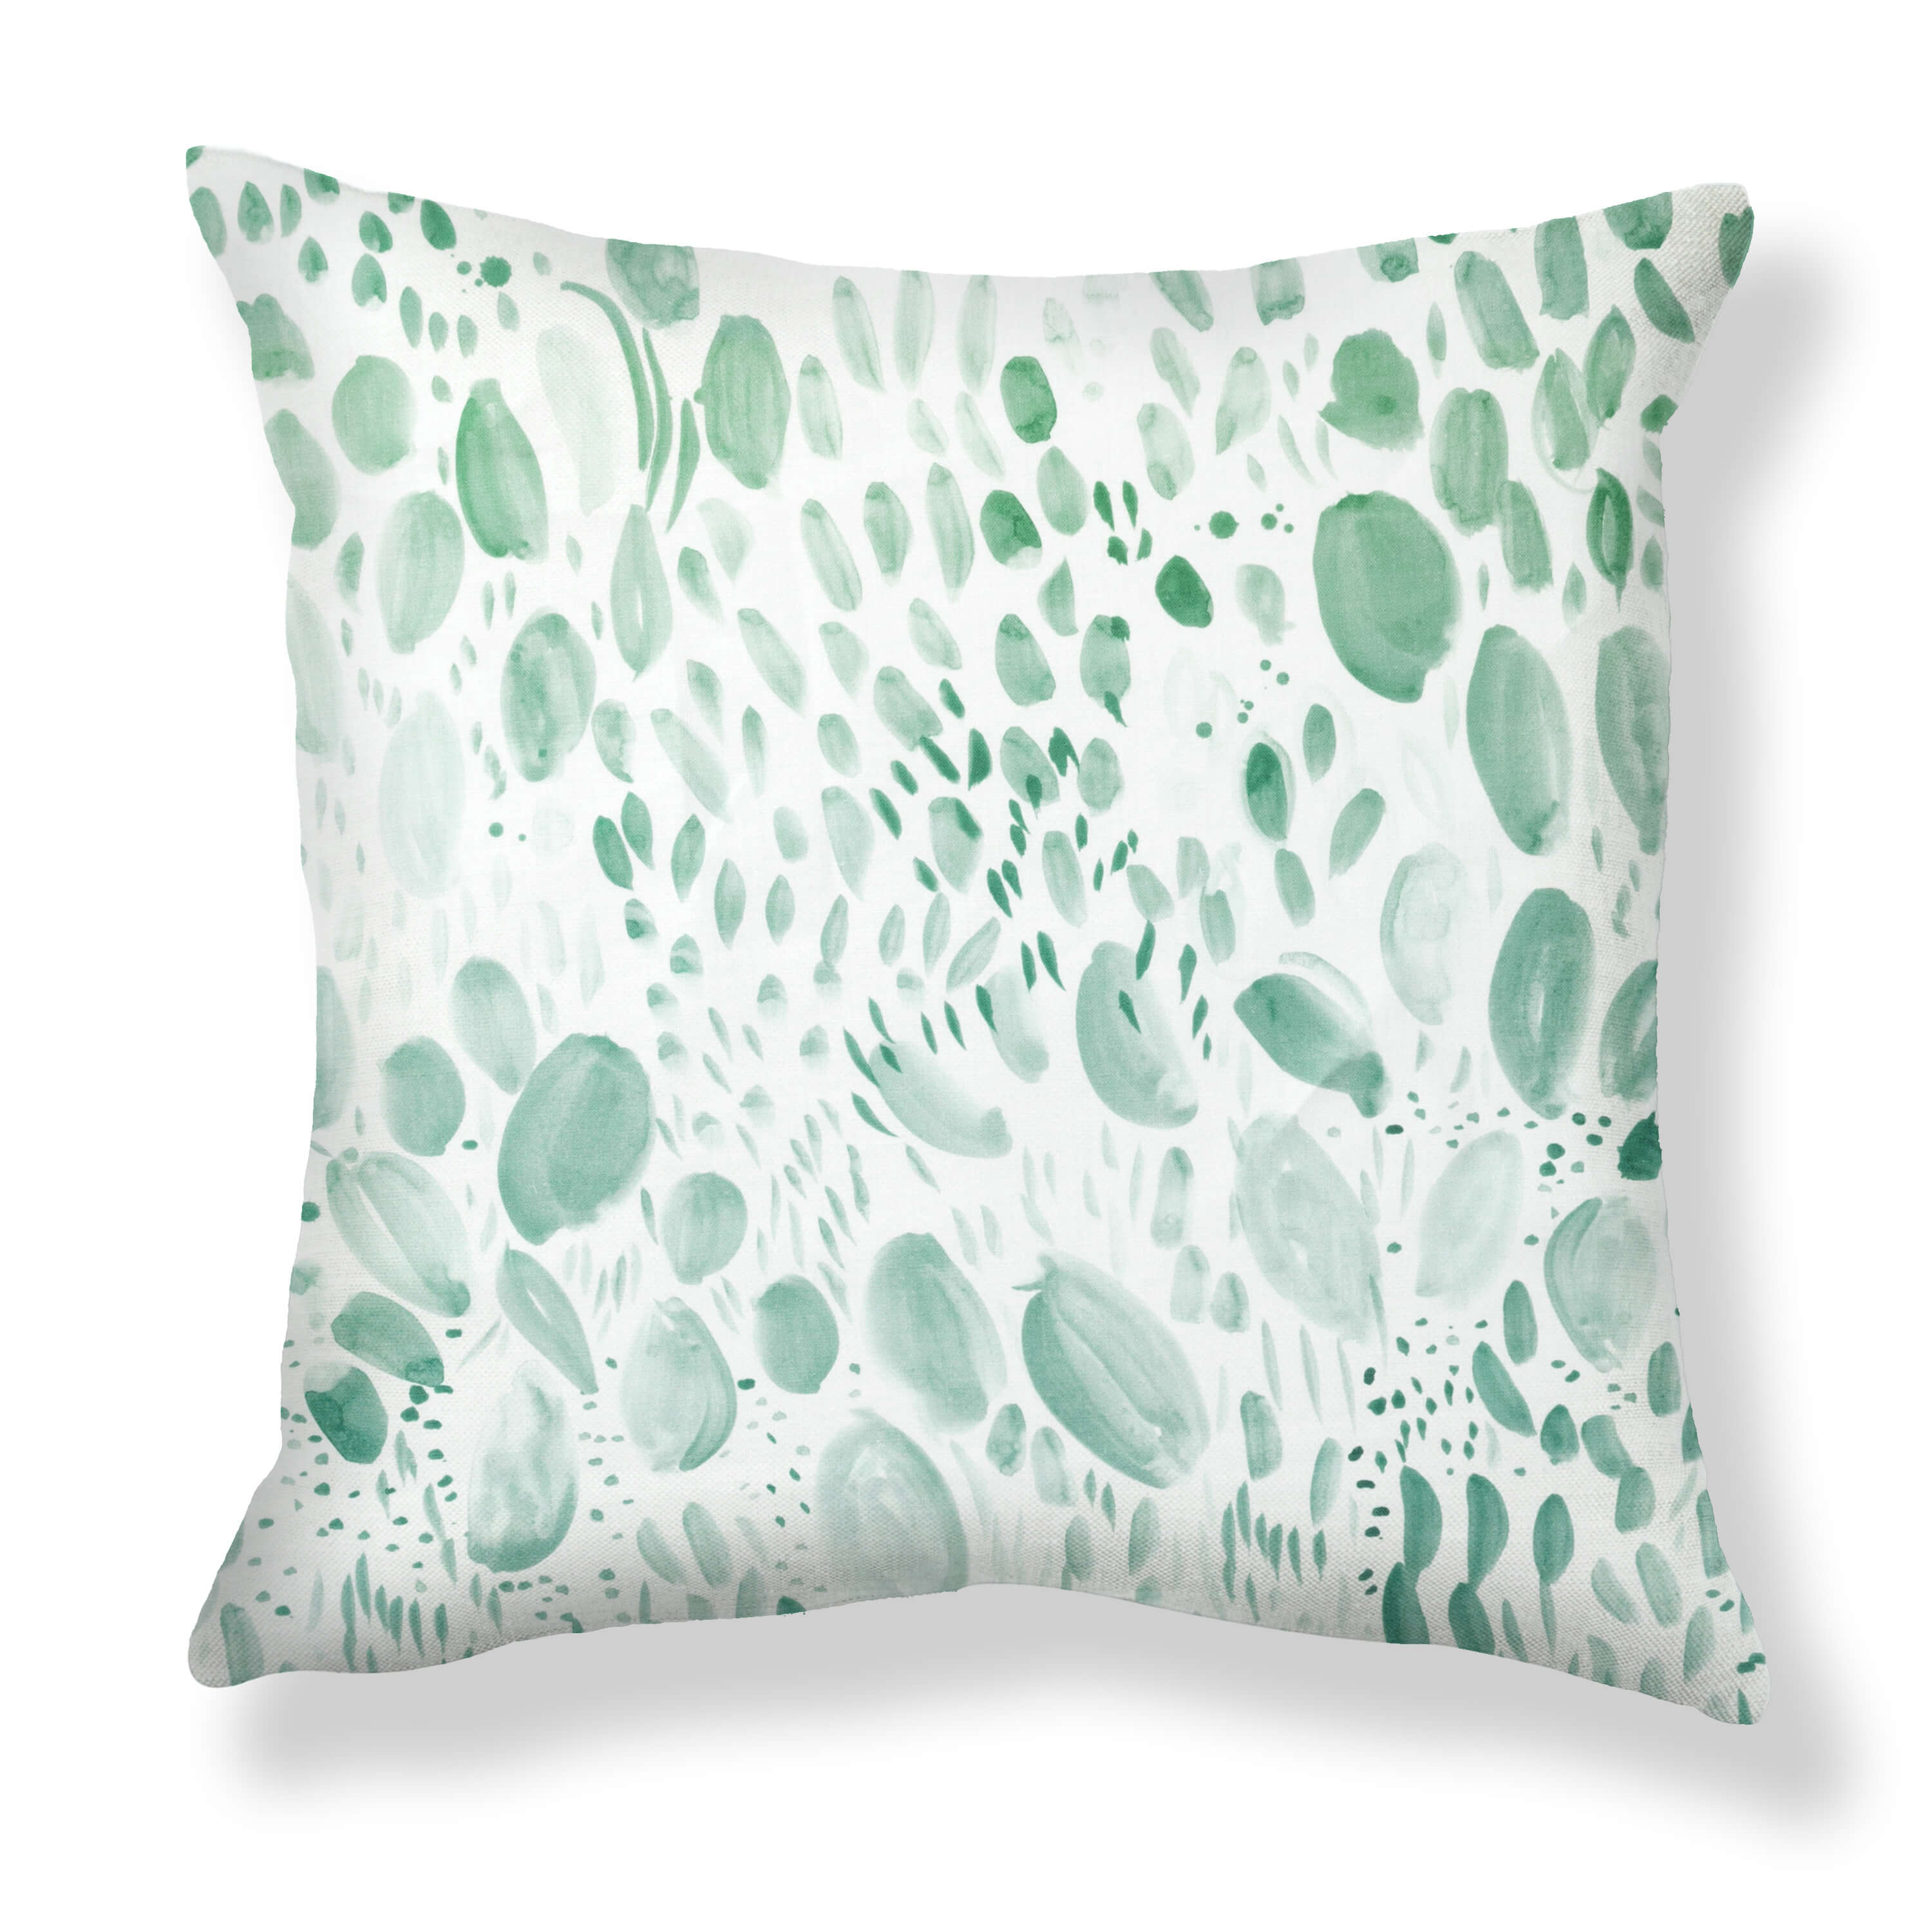 Blooms Pillows in Soft Green